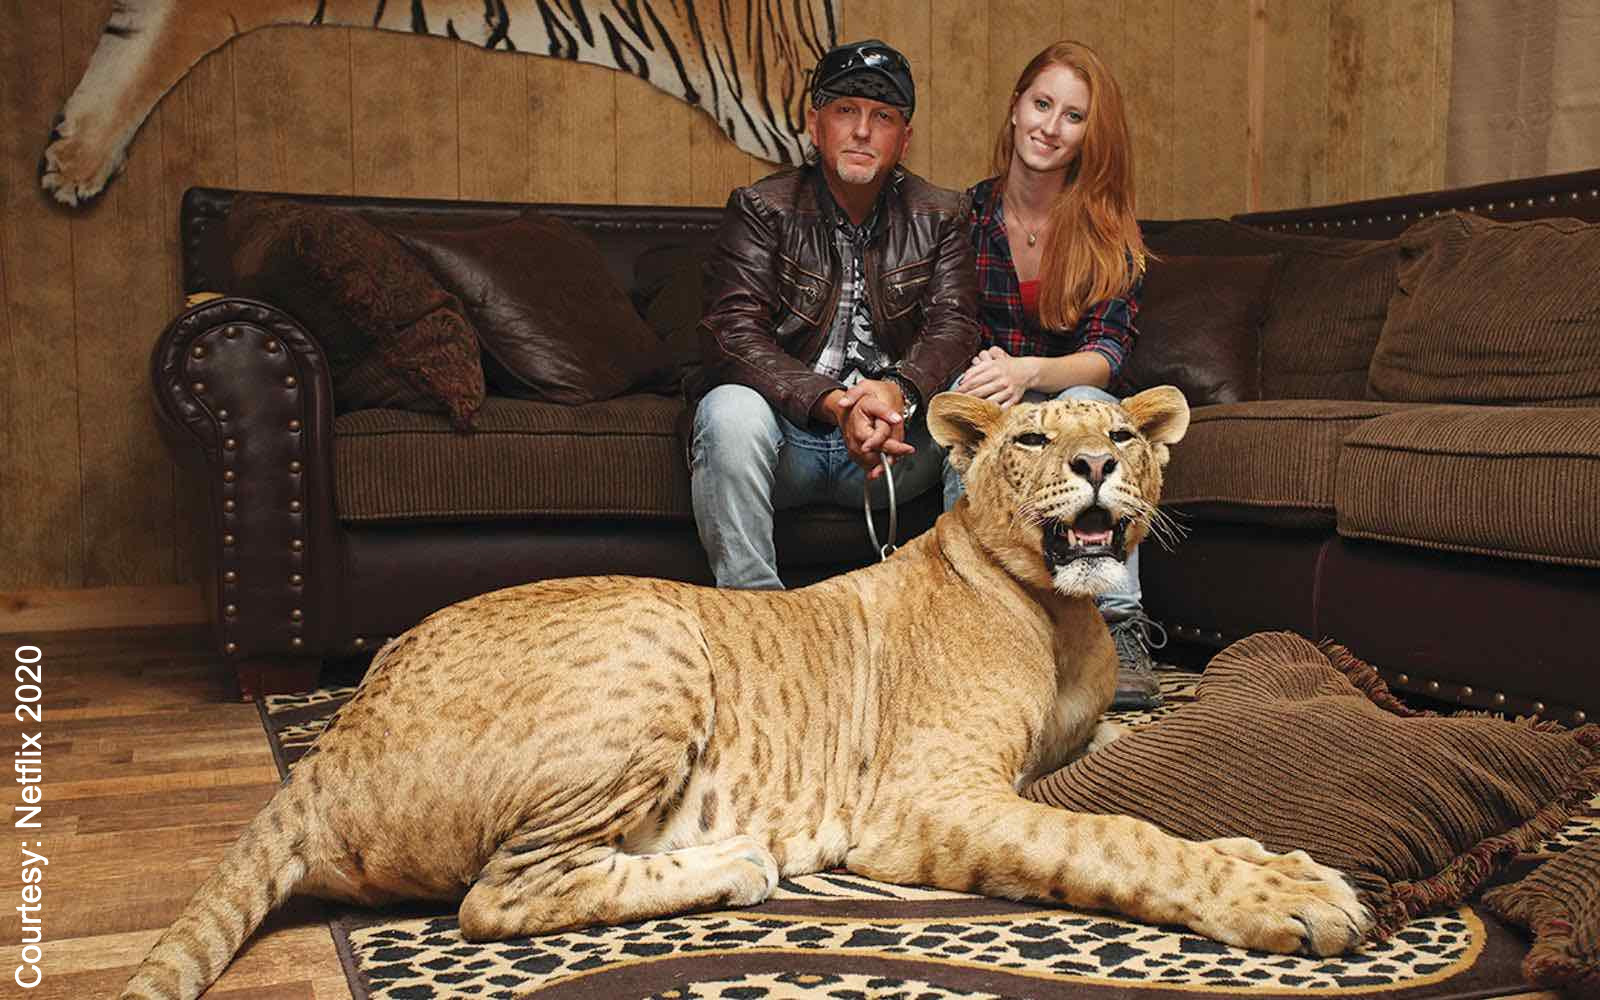 Tiger King's Jeff Lowe and his wife Lauren